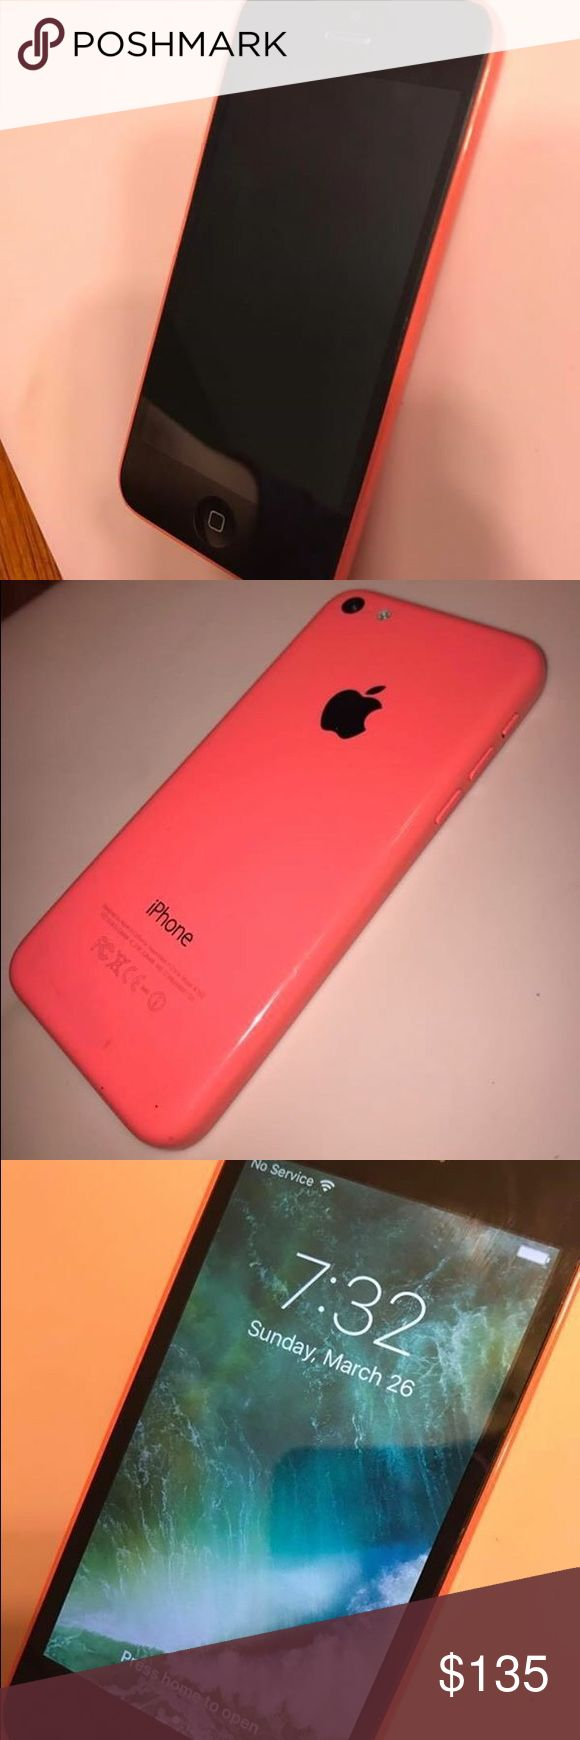 iPhone 5c PINK 16 gb Fully functional, Noticeable scratches - Feel free to make an offer!!😊 Other